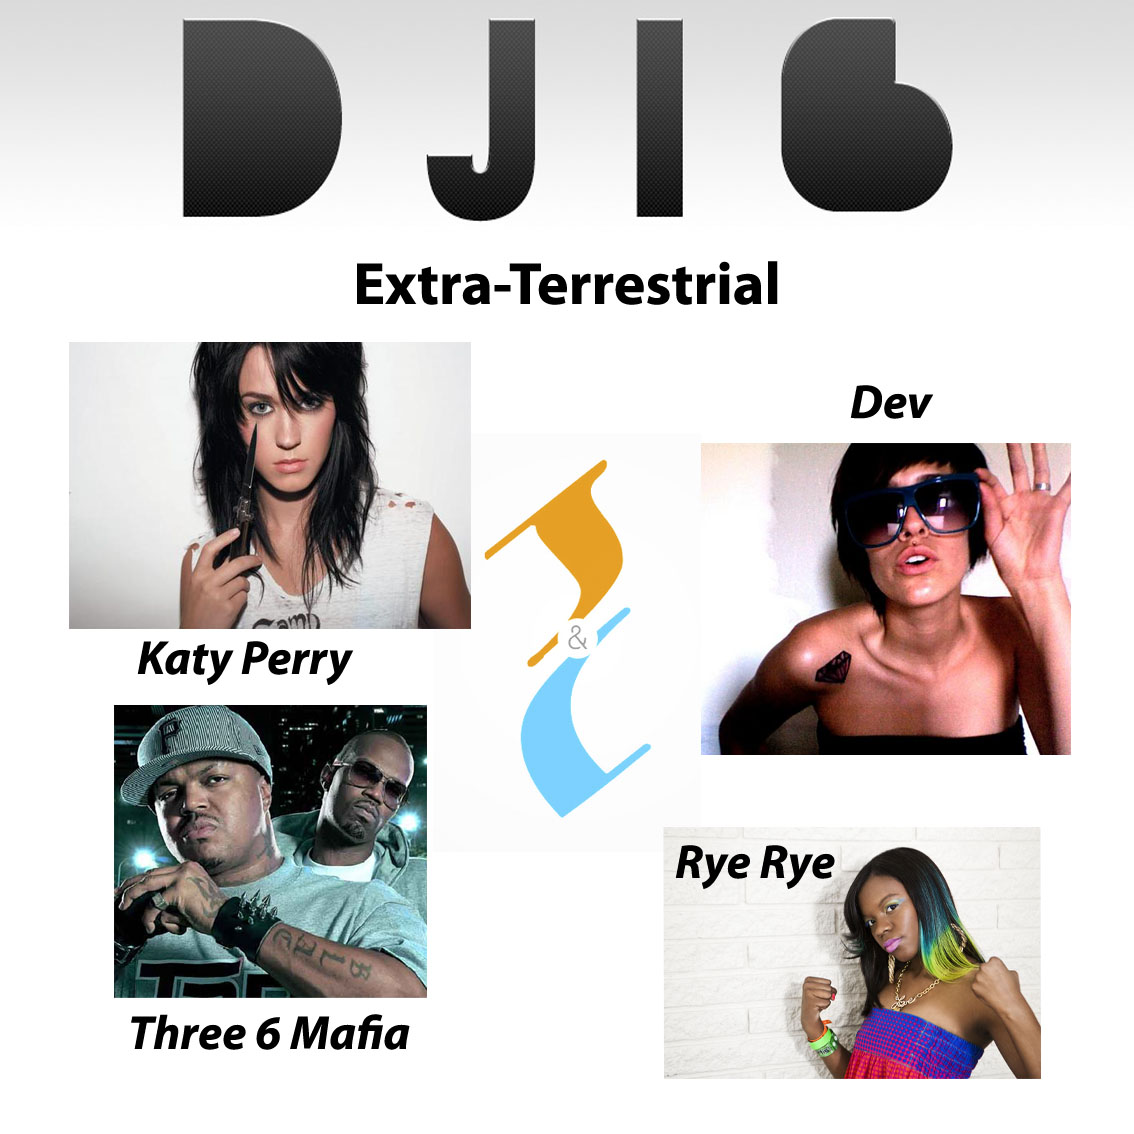 Extra-Terrestrial (Katy Perry x Dev x Three 6 Mafia x Rye Rye) By DJ i6